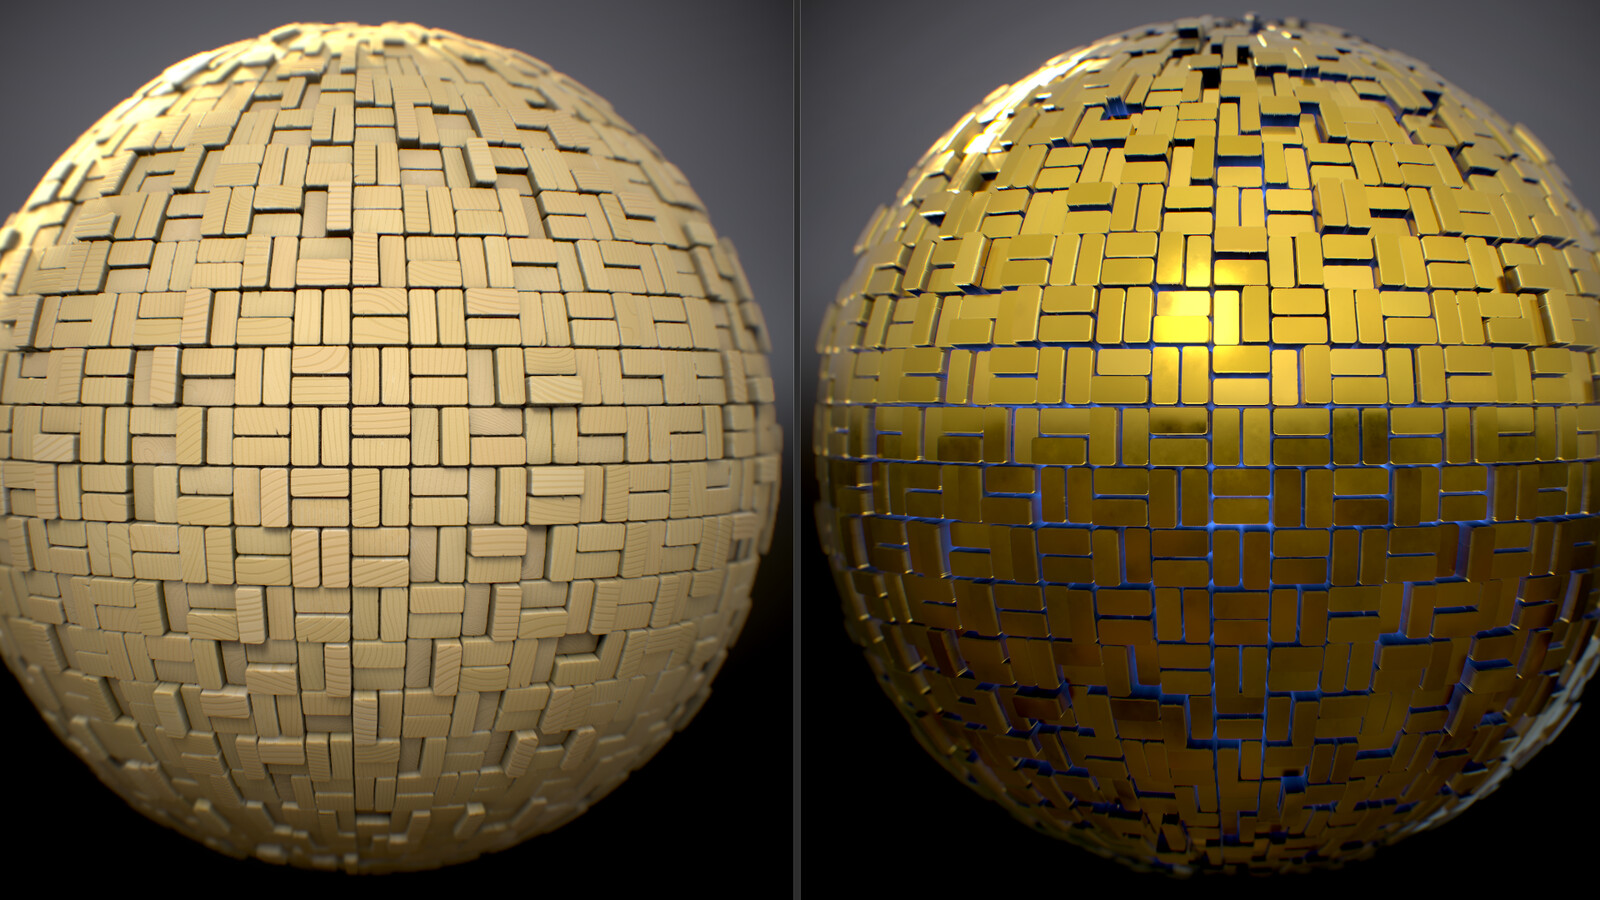 One of the decor panels and a variation of the substance.